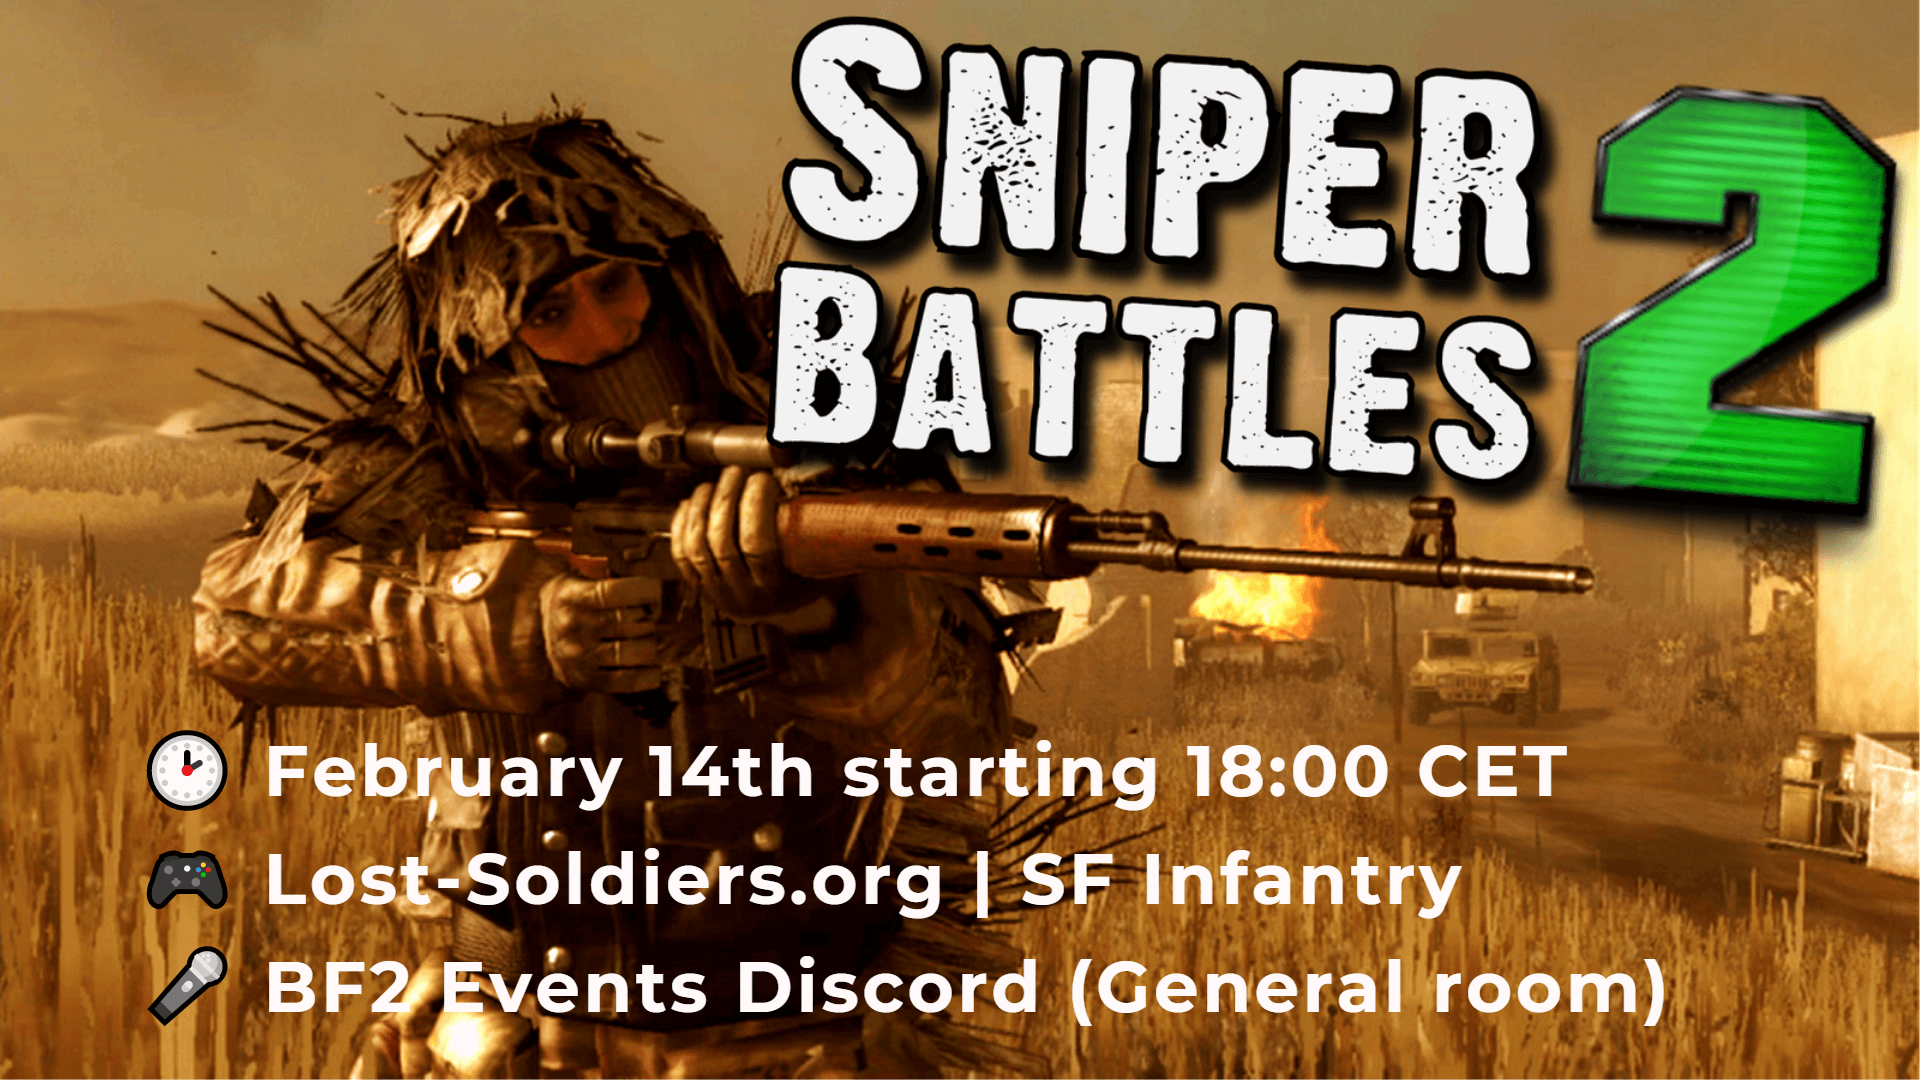 https://www.lost-soldiers.org/images/news-pics/SF-Sniper-Battles-2021-min.png